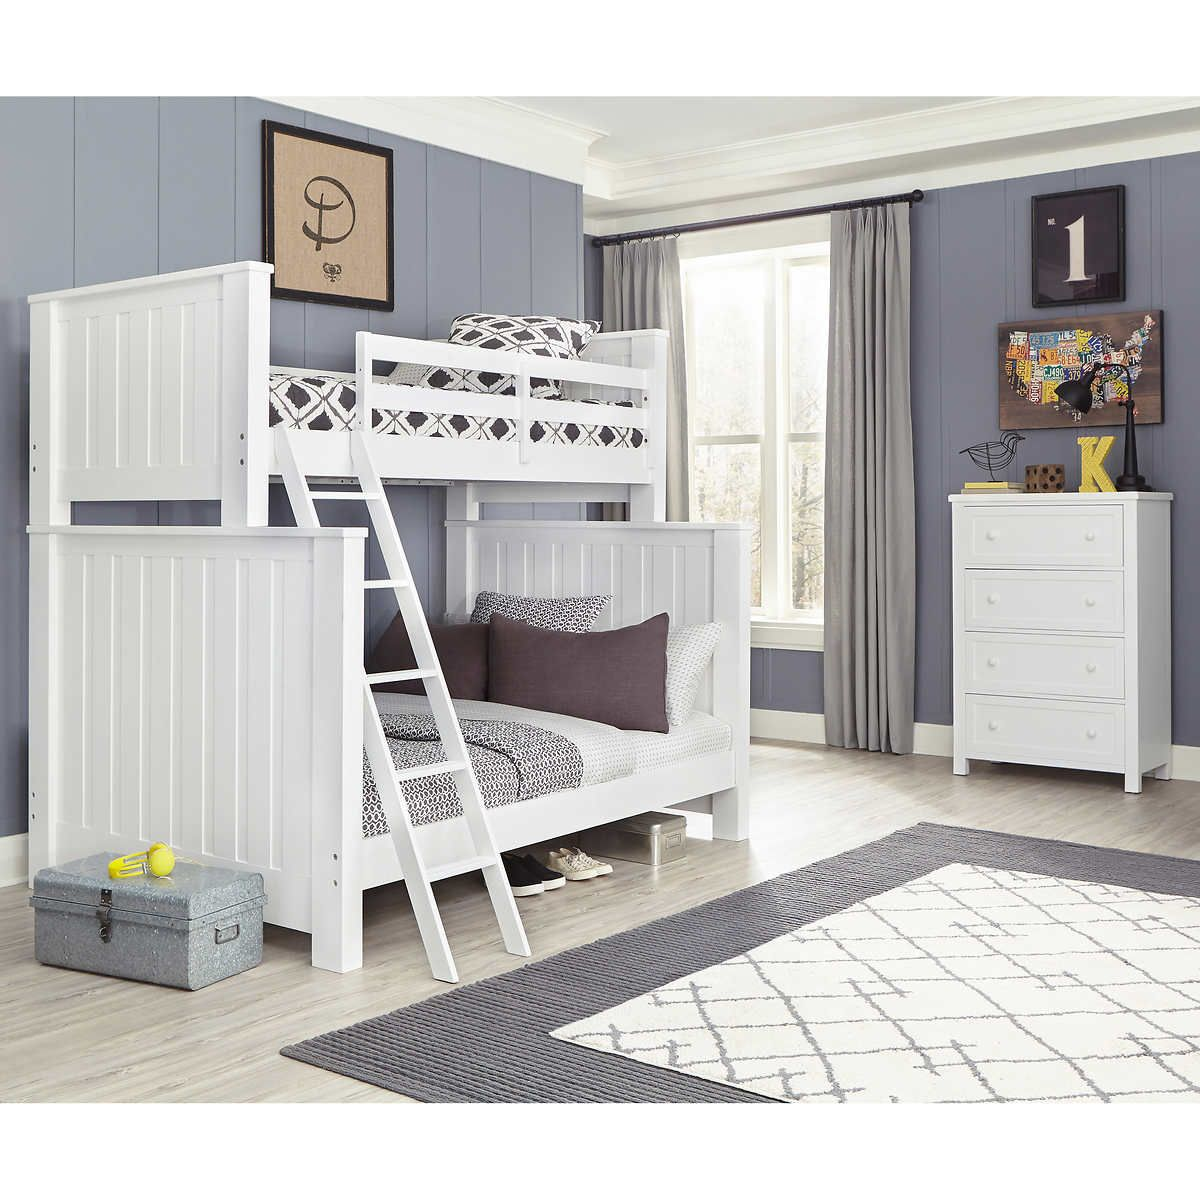 Monaco 2 Piece Twin Over Full Bunk Bed Set Bunk Bed Decor Bunk Beds Cool Bunk Beds